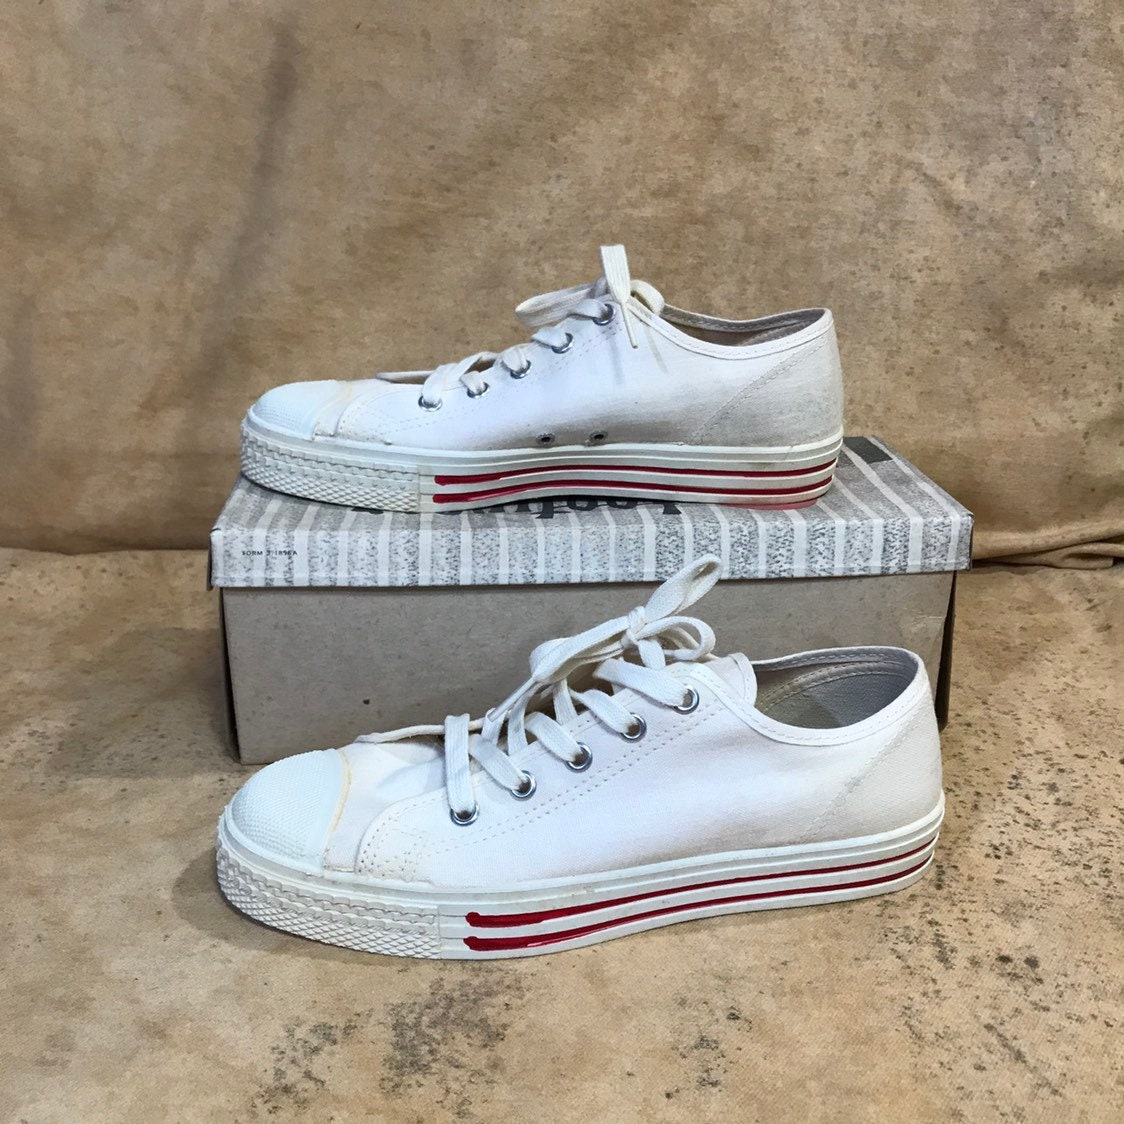 eb52ec3ef21119 Canvas shoes jets low tops deadstock mens size womens size sneakers red  band jets jpg 1124x1124